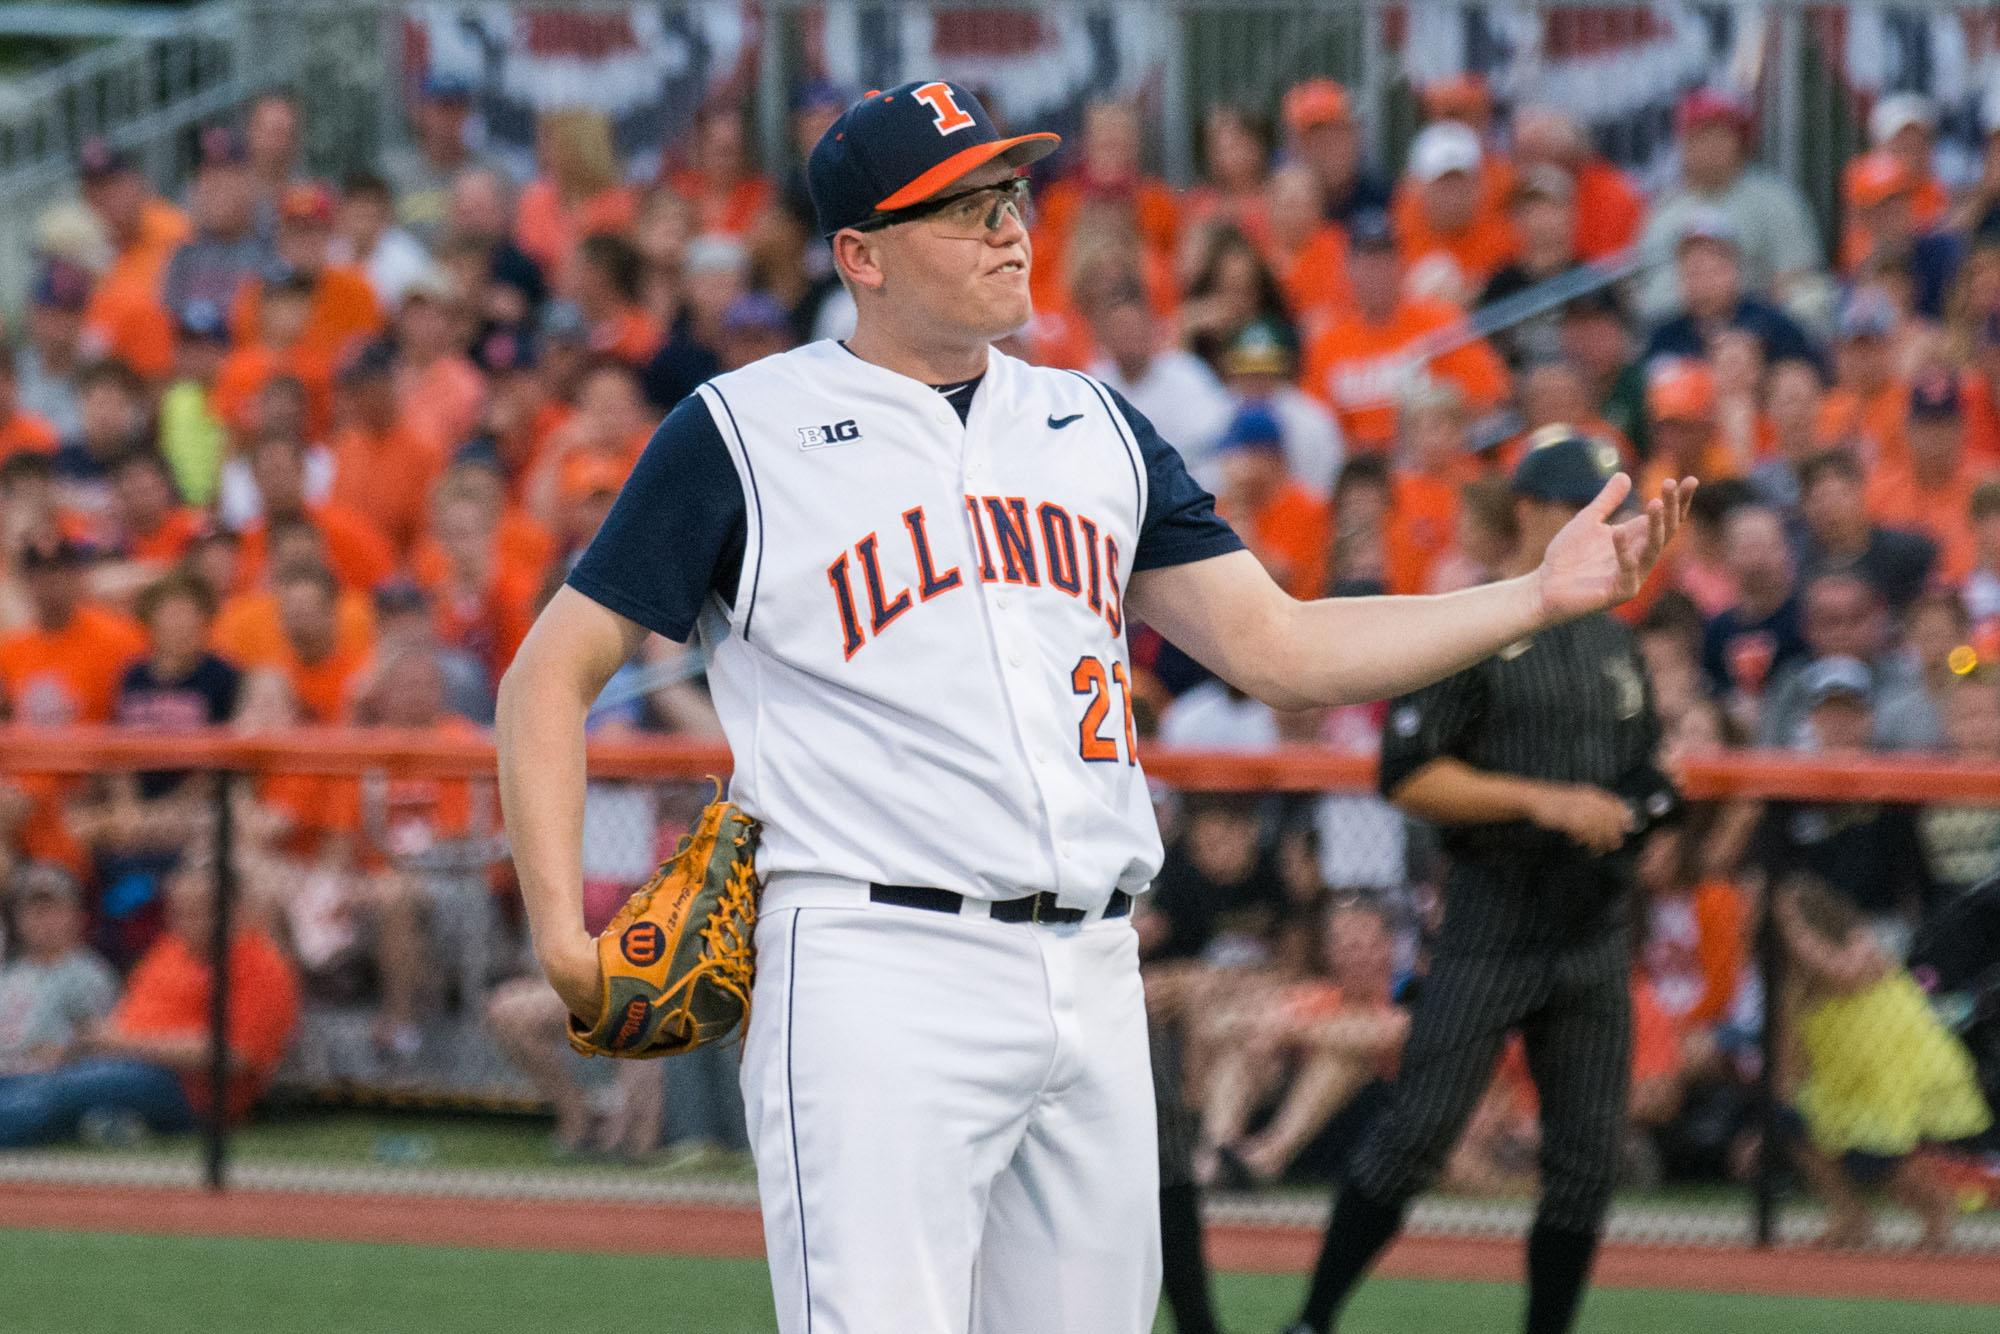 Illinois' starting pitcher Kevin Duchene shows his frustration during Vanderbilt's convincing 13-0 victory over the Fighting Illini during their first game of the NCAA Super Regionals at Illinois Field on June 6.